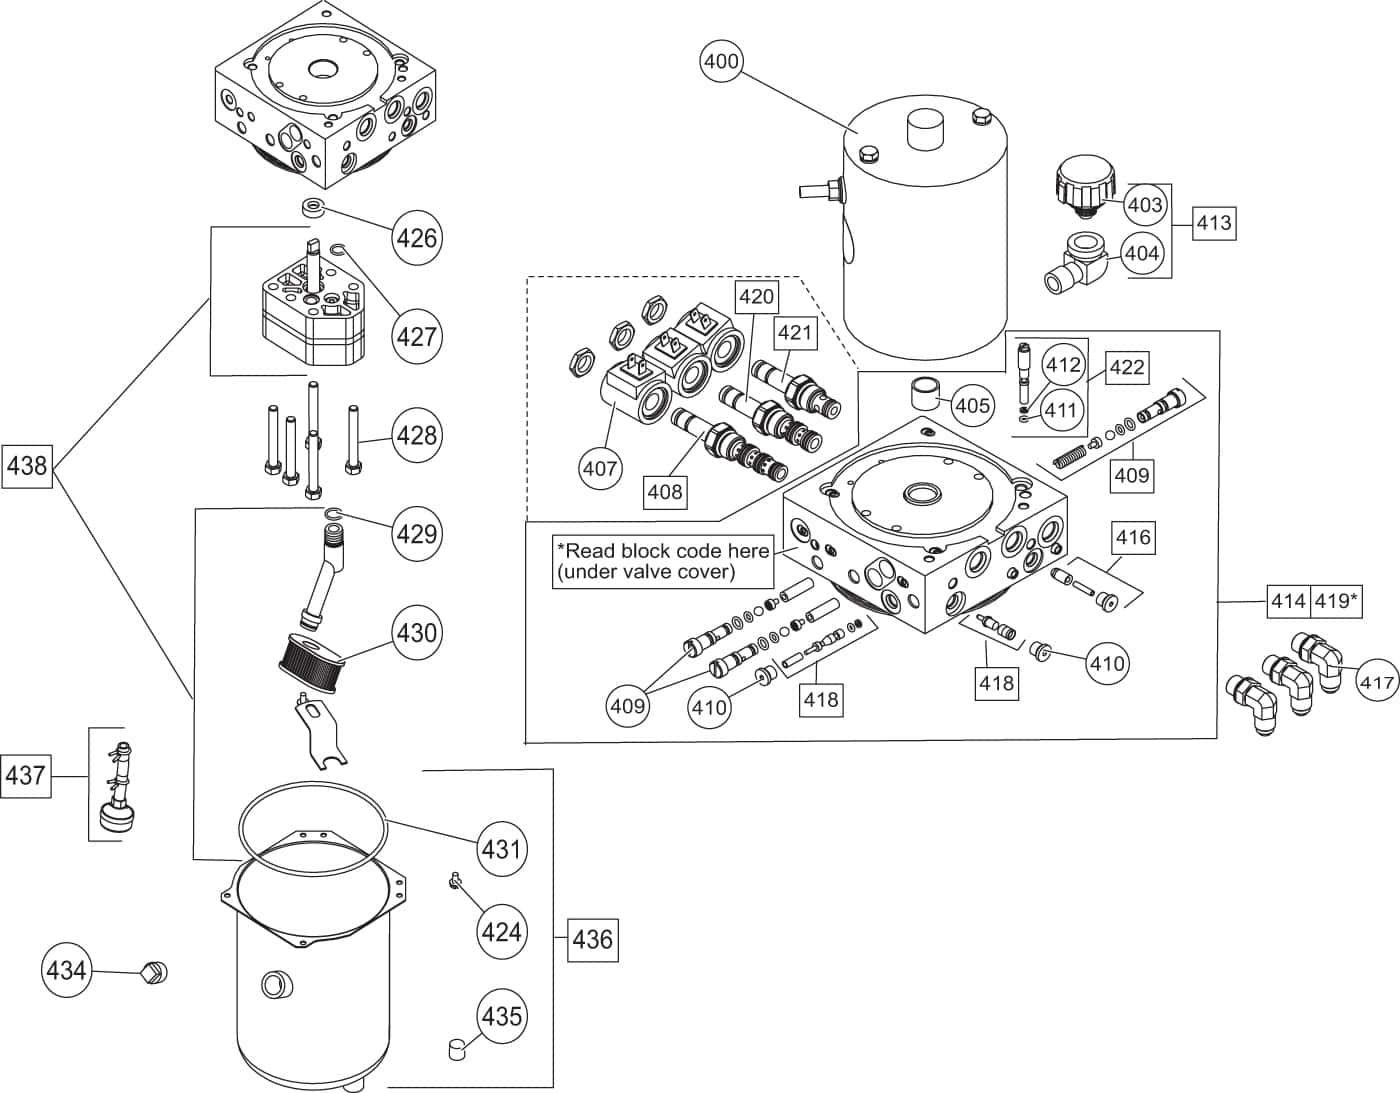 sdserieshu sd 995c wiring diagram,c \u2022 indy500 co  at readyjetset.co